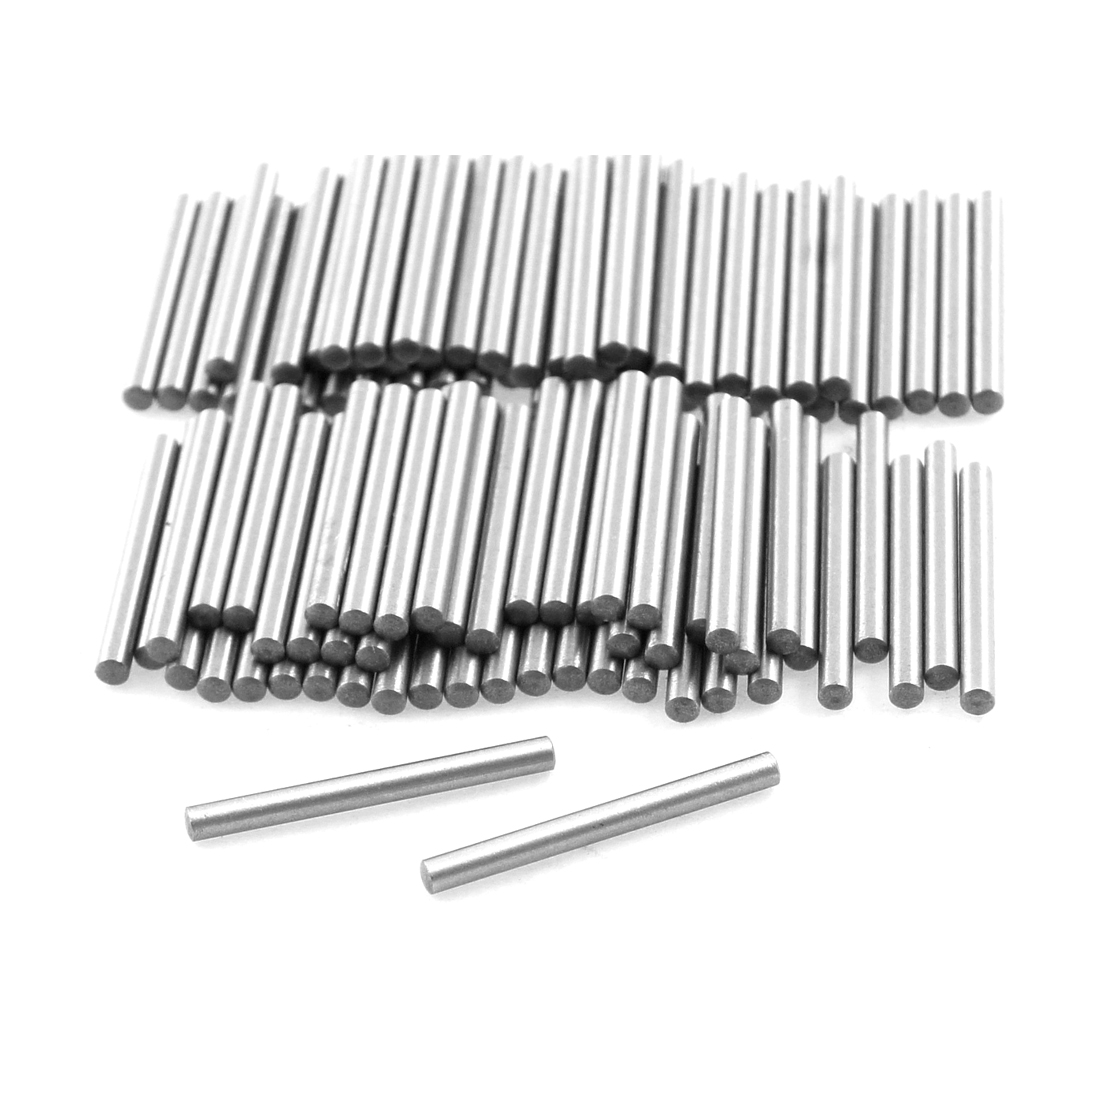 100-Pcs-1-5mm-Diameter-15-8mm-Length-Cylinder-Parallel-Dowel-Pins